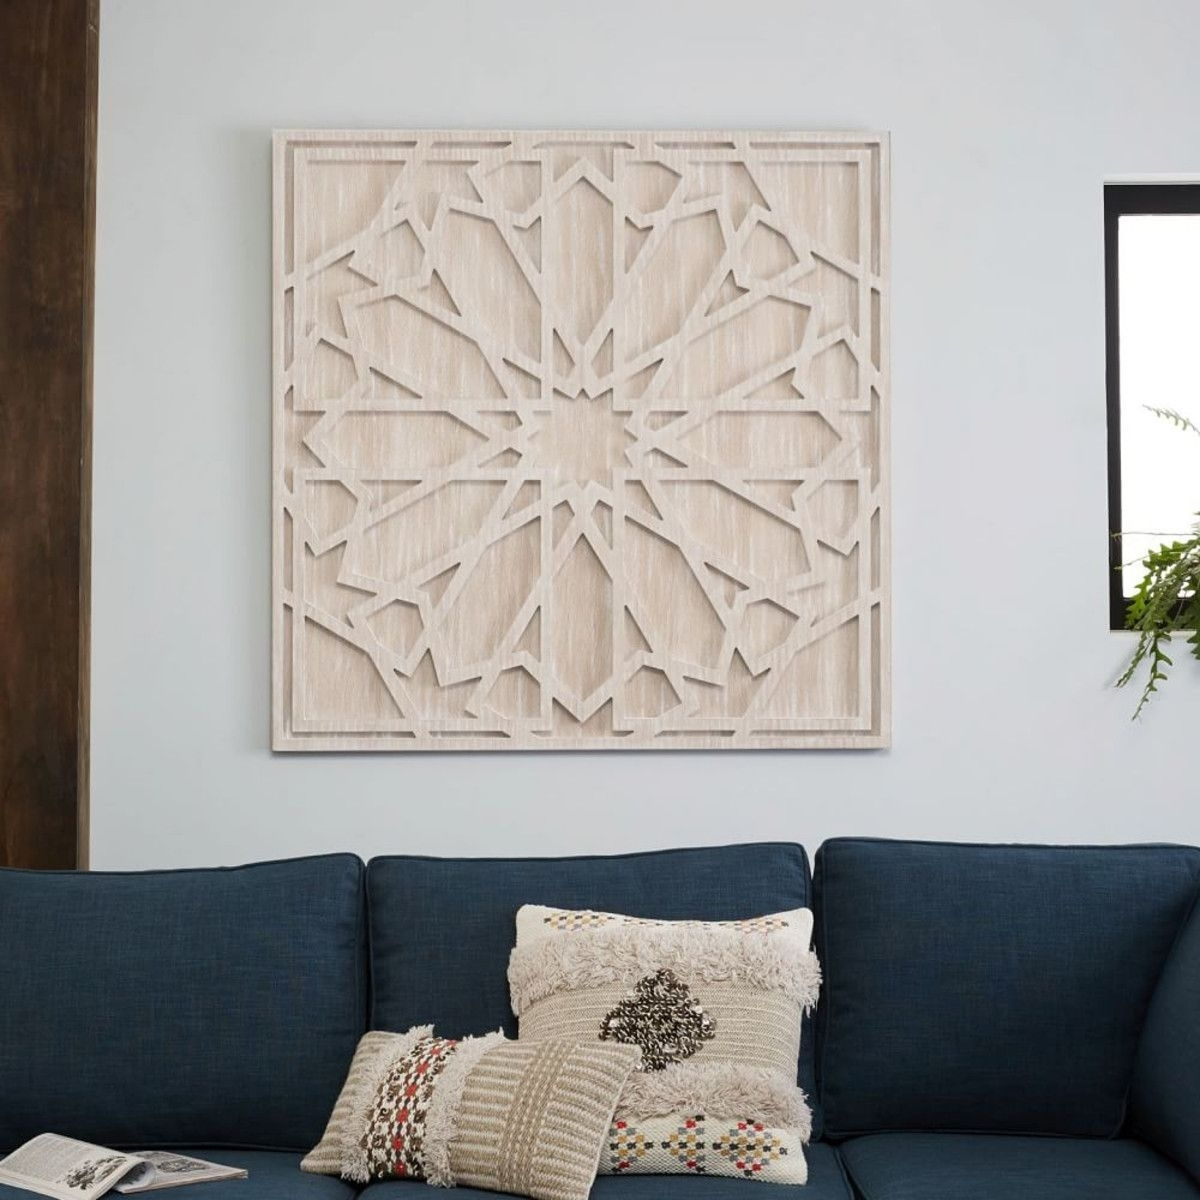 Whitewashed Wood Wall Art | Pinterest | Whitewash Wood, Wood Wall For Most Recently Released West Elm Wall Art (View 19 of 20)